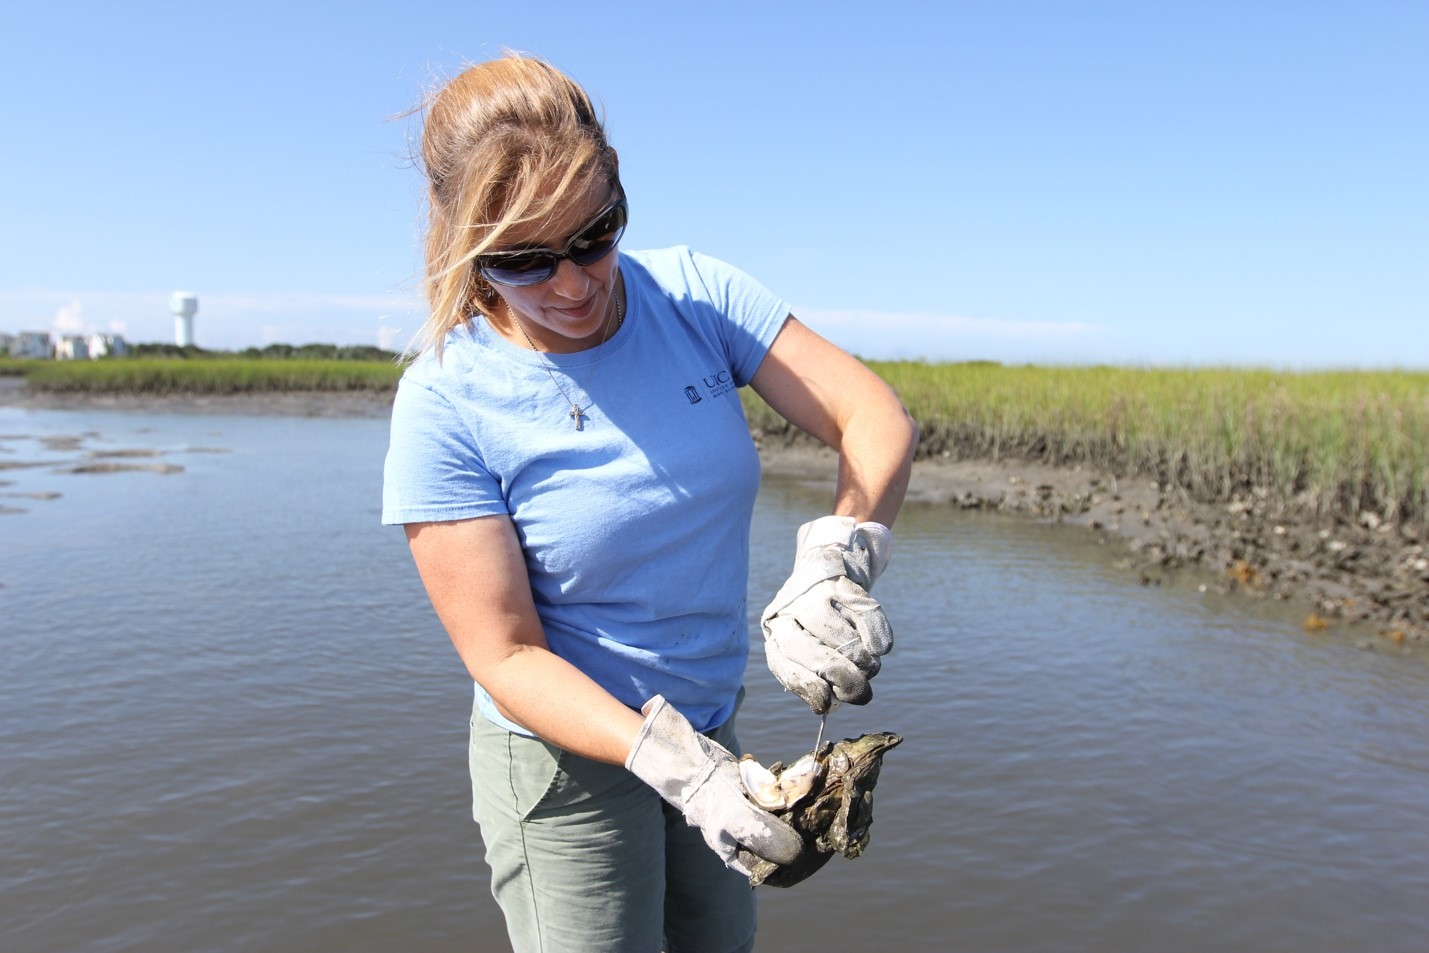 a woman removes an oyster from some sediment